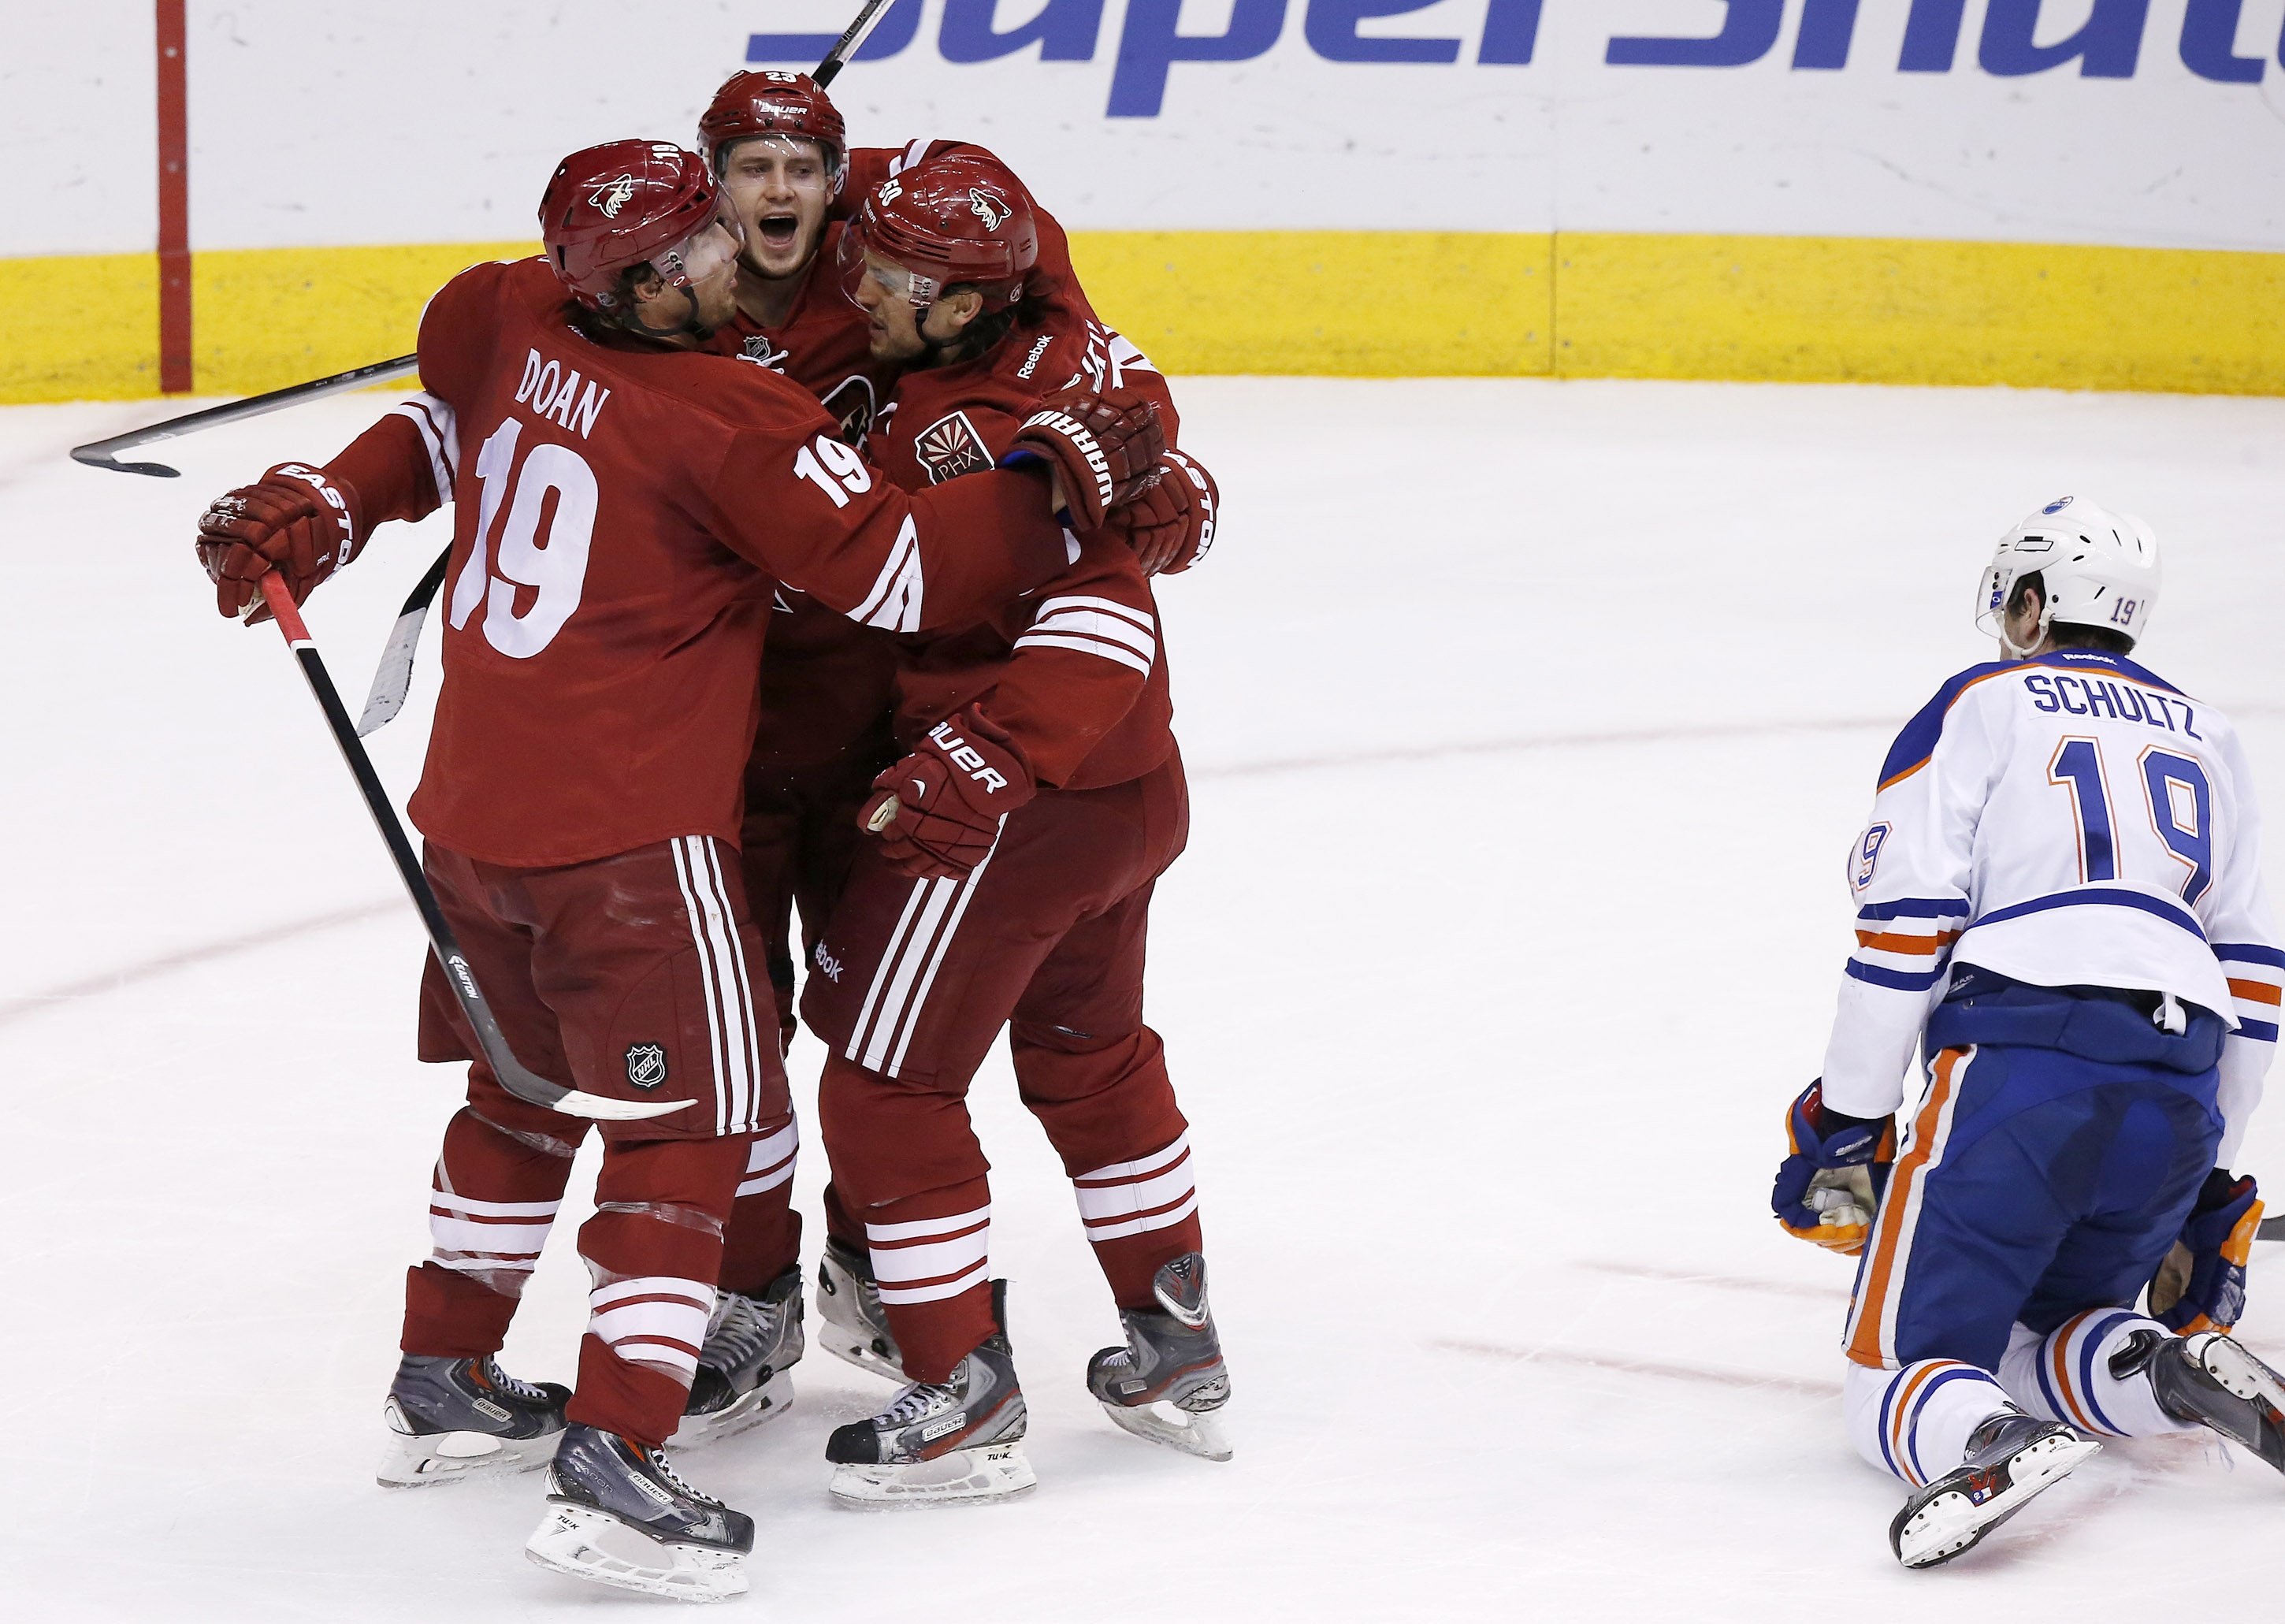 Phoenix Coyotes' Oliver Ekman-Larsson, second from left, of Sweden, celebrates his goal with teammates Shane Doan, left, and Antoine Vermette as Edmonton Oilers' Justin Schultz (19) kneels on the ice during the second period of an NHL hockey game, Friday, April 4, 2014, in Glendale, Ariz